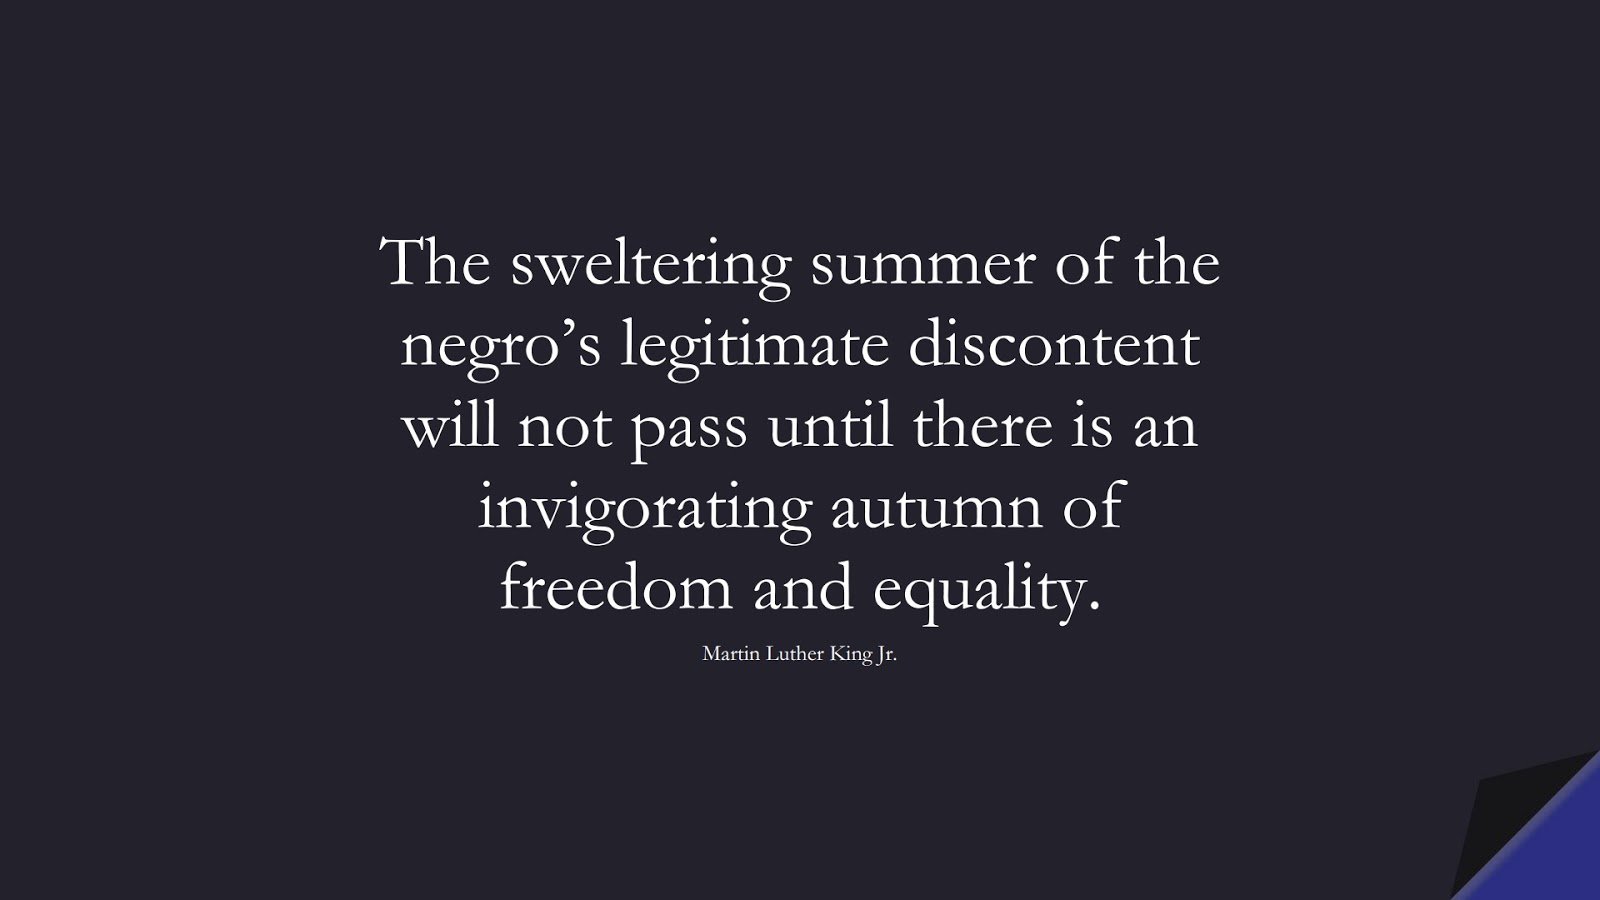 The sweltering summer of the negro's legitimate discontent will not pass until there is an invigorating autumn of freedom and equality. (Martin Luther King Jr.);  #MartinLutherKingJrQuotes